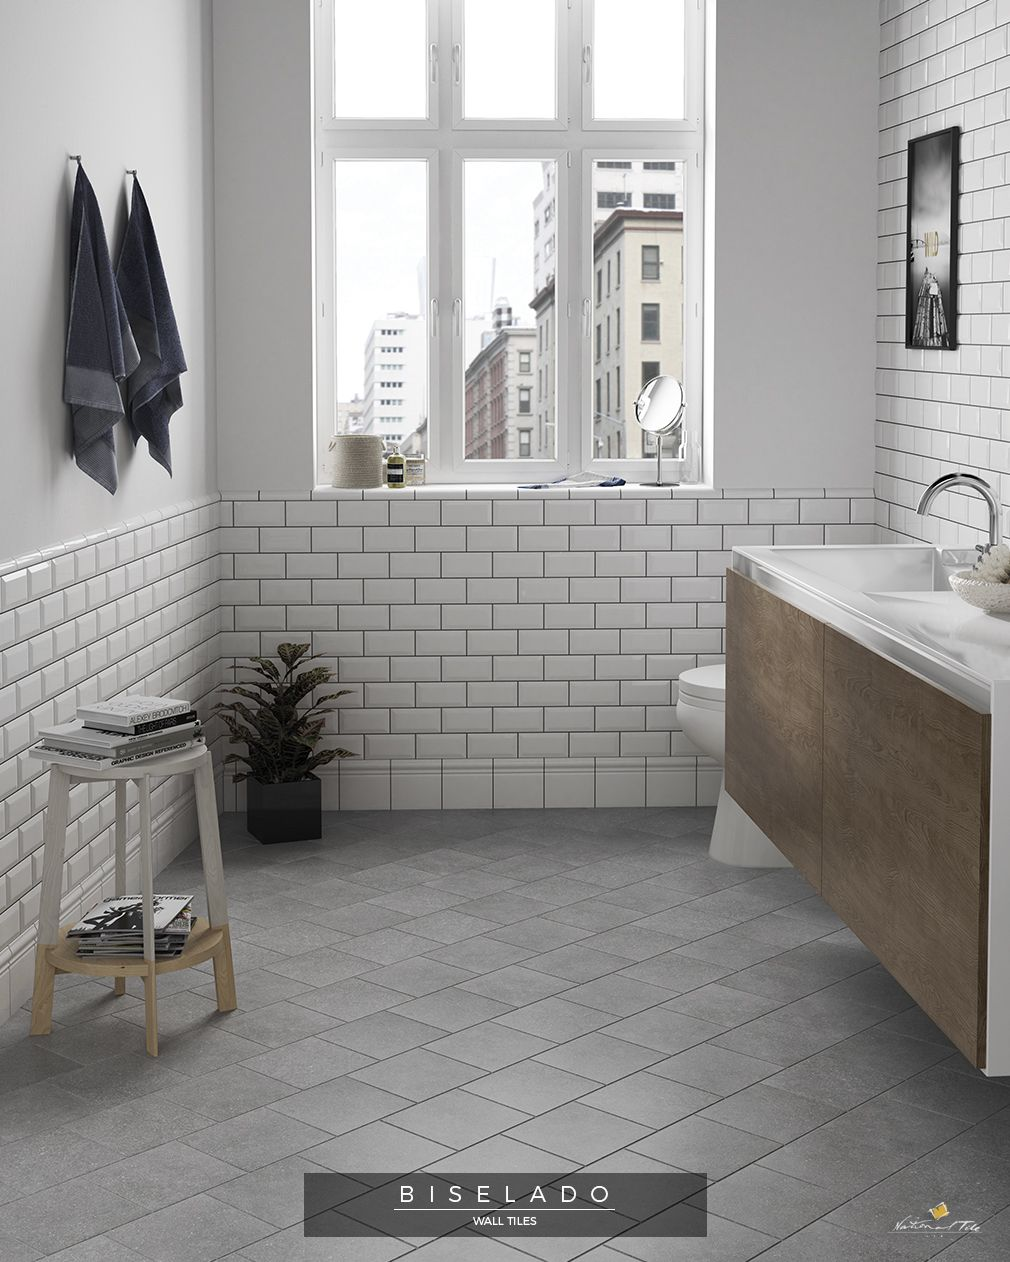 Metro Subway Underground Bevelled Bathroom Wall Tiles Small Bathroom Design Minimalist Style In Bathrooms Remodel White Bathroom Tiles Small Bathroom